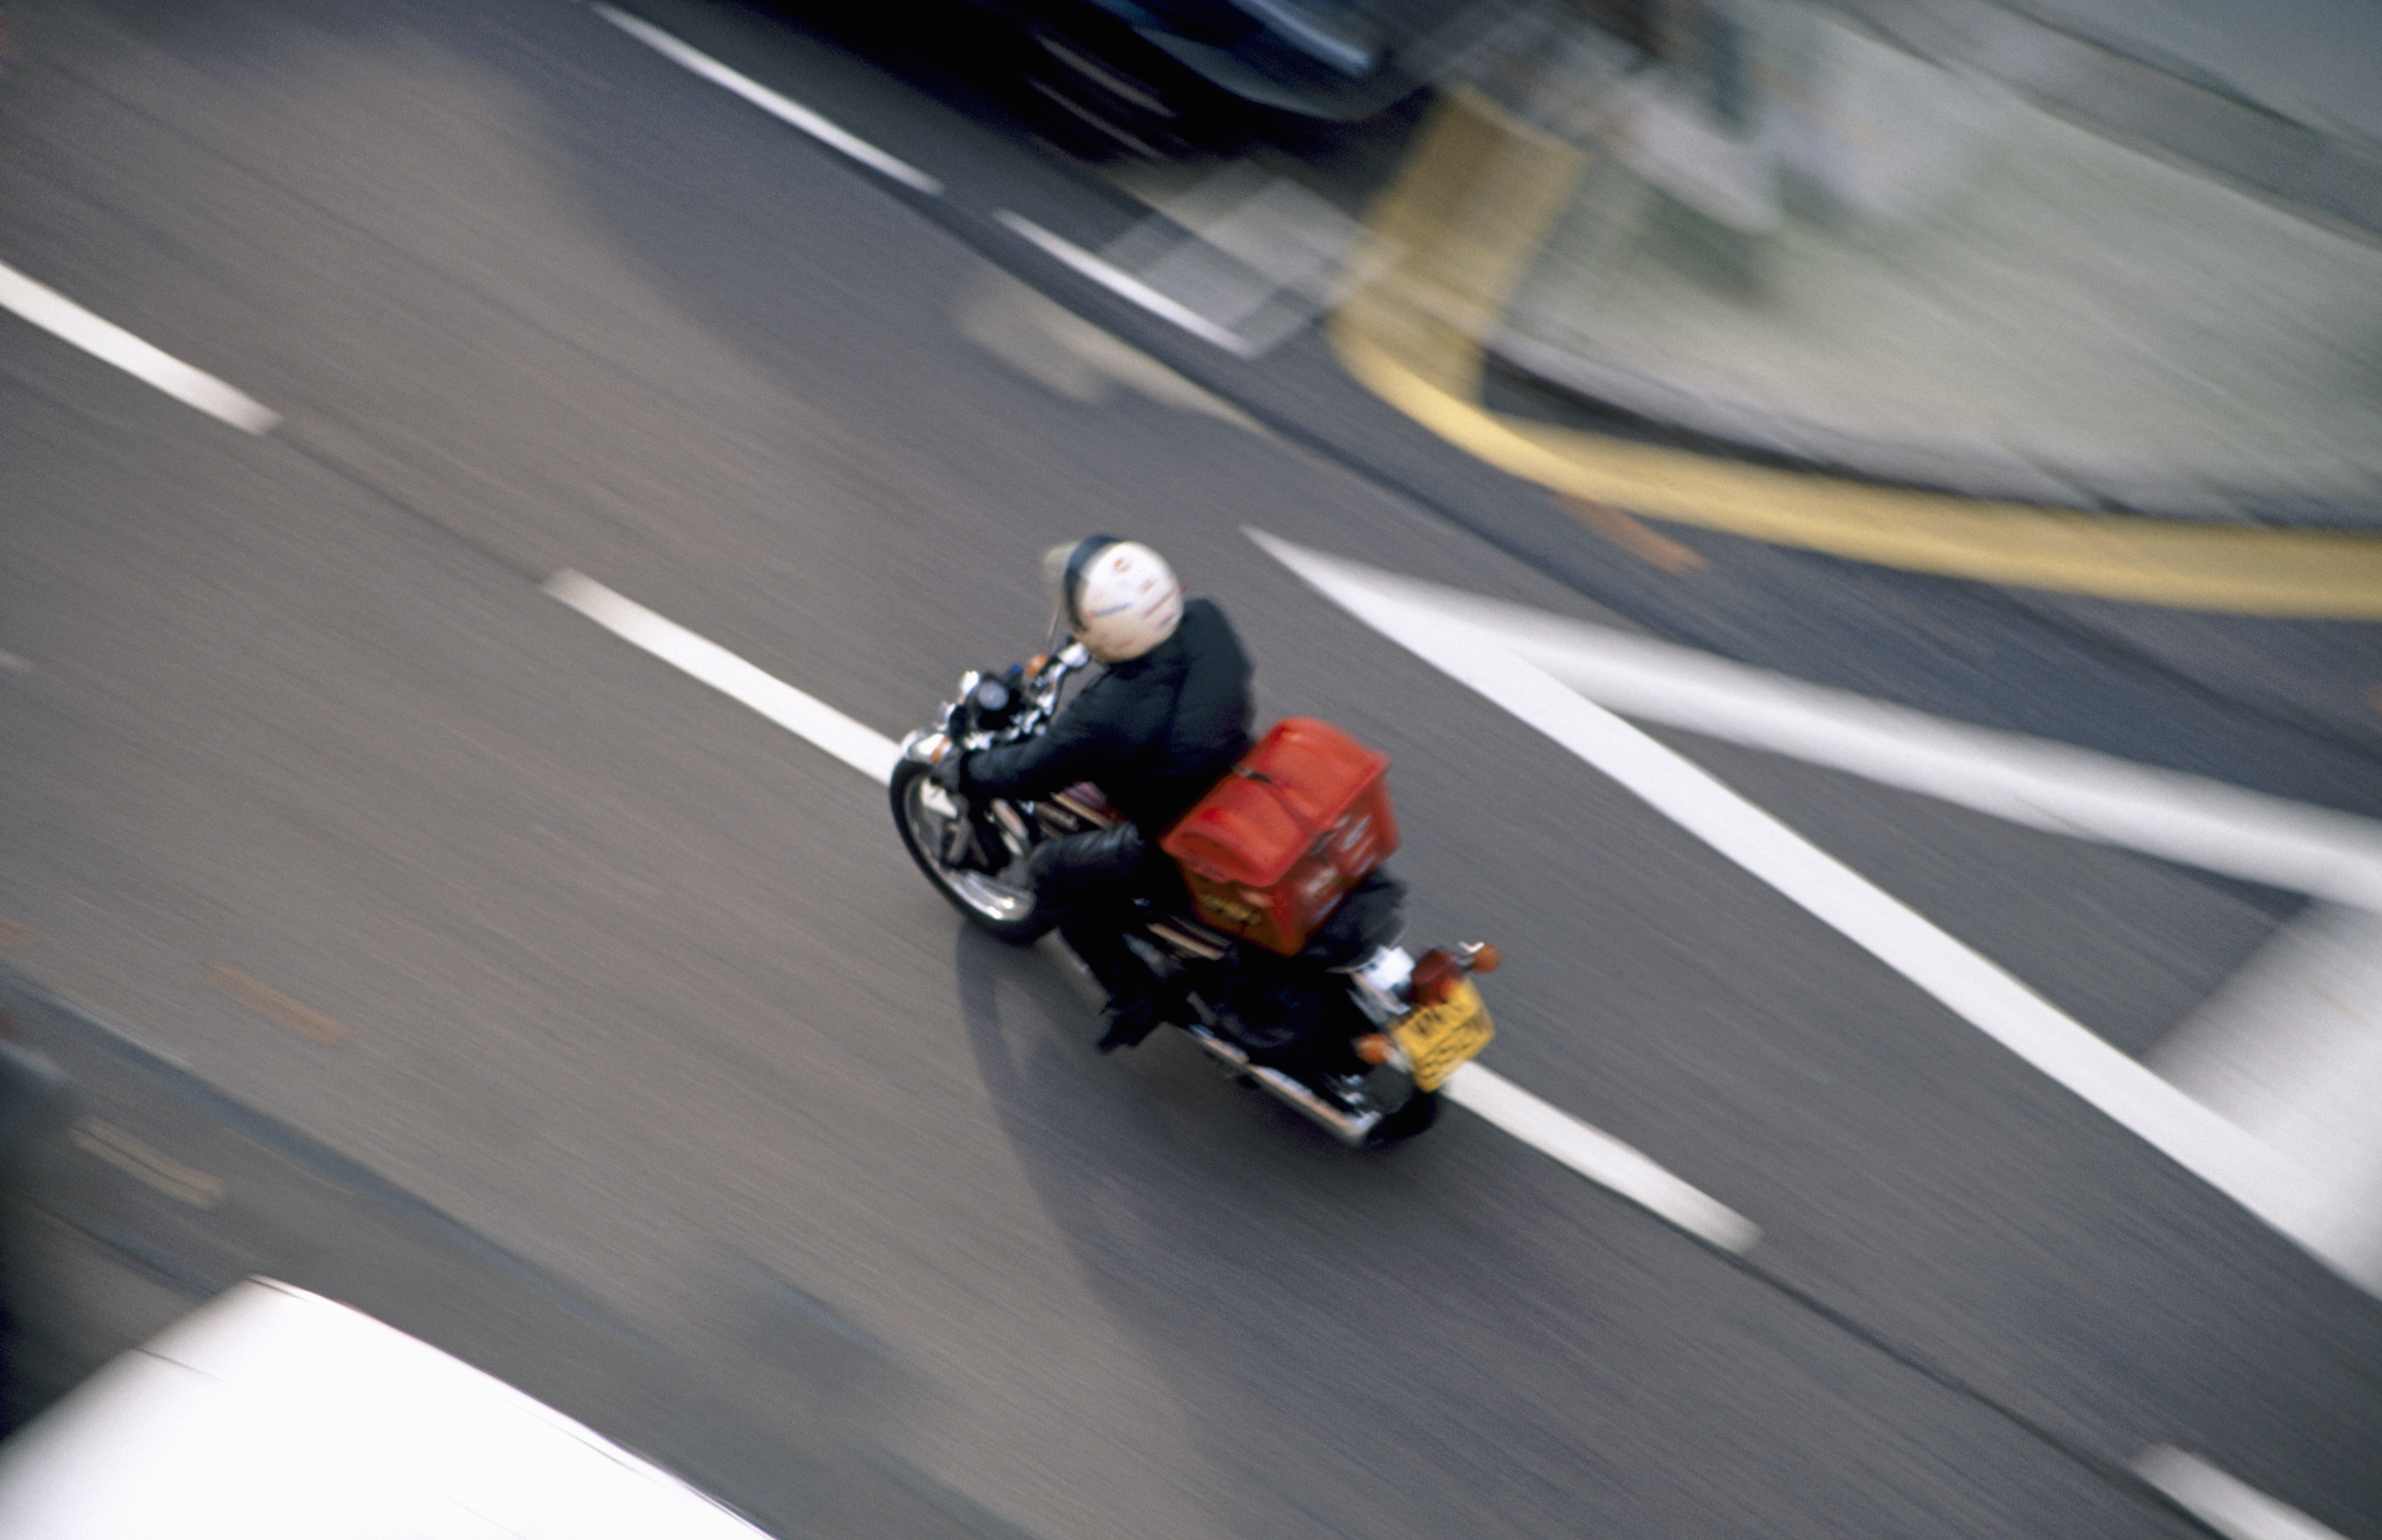 Image of a motorcycle courier speeding down a street.